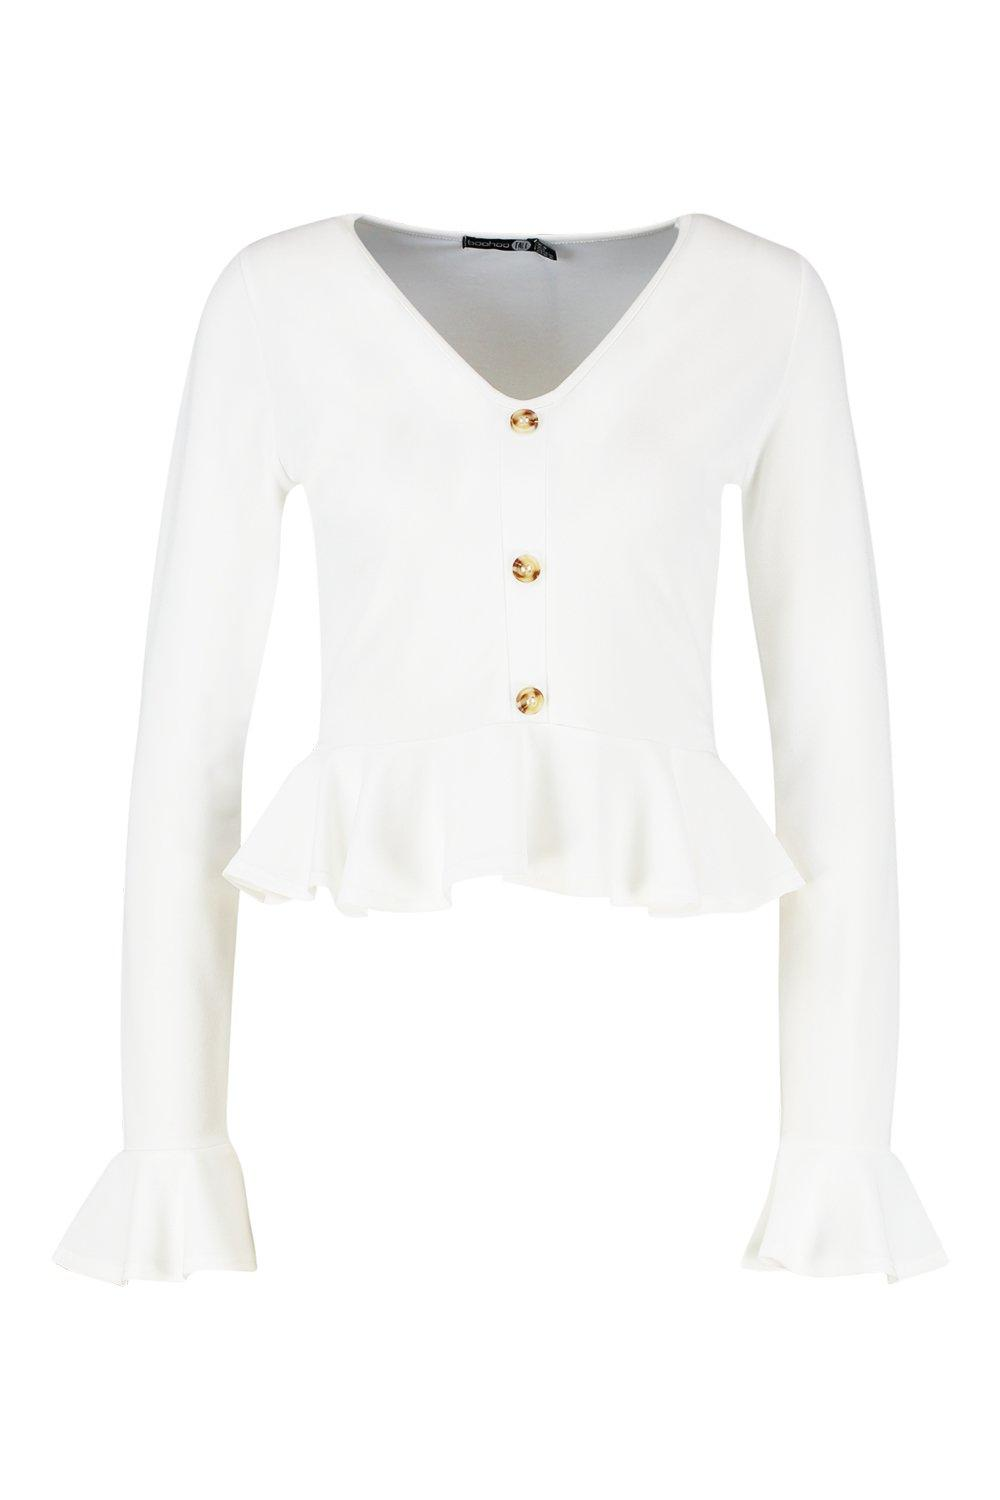 Top Horn Peplum white Button Tall Hem wqIFEnO